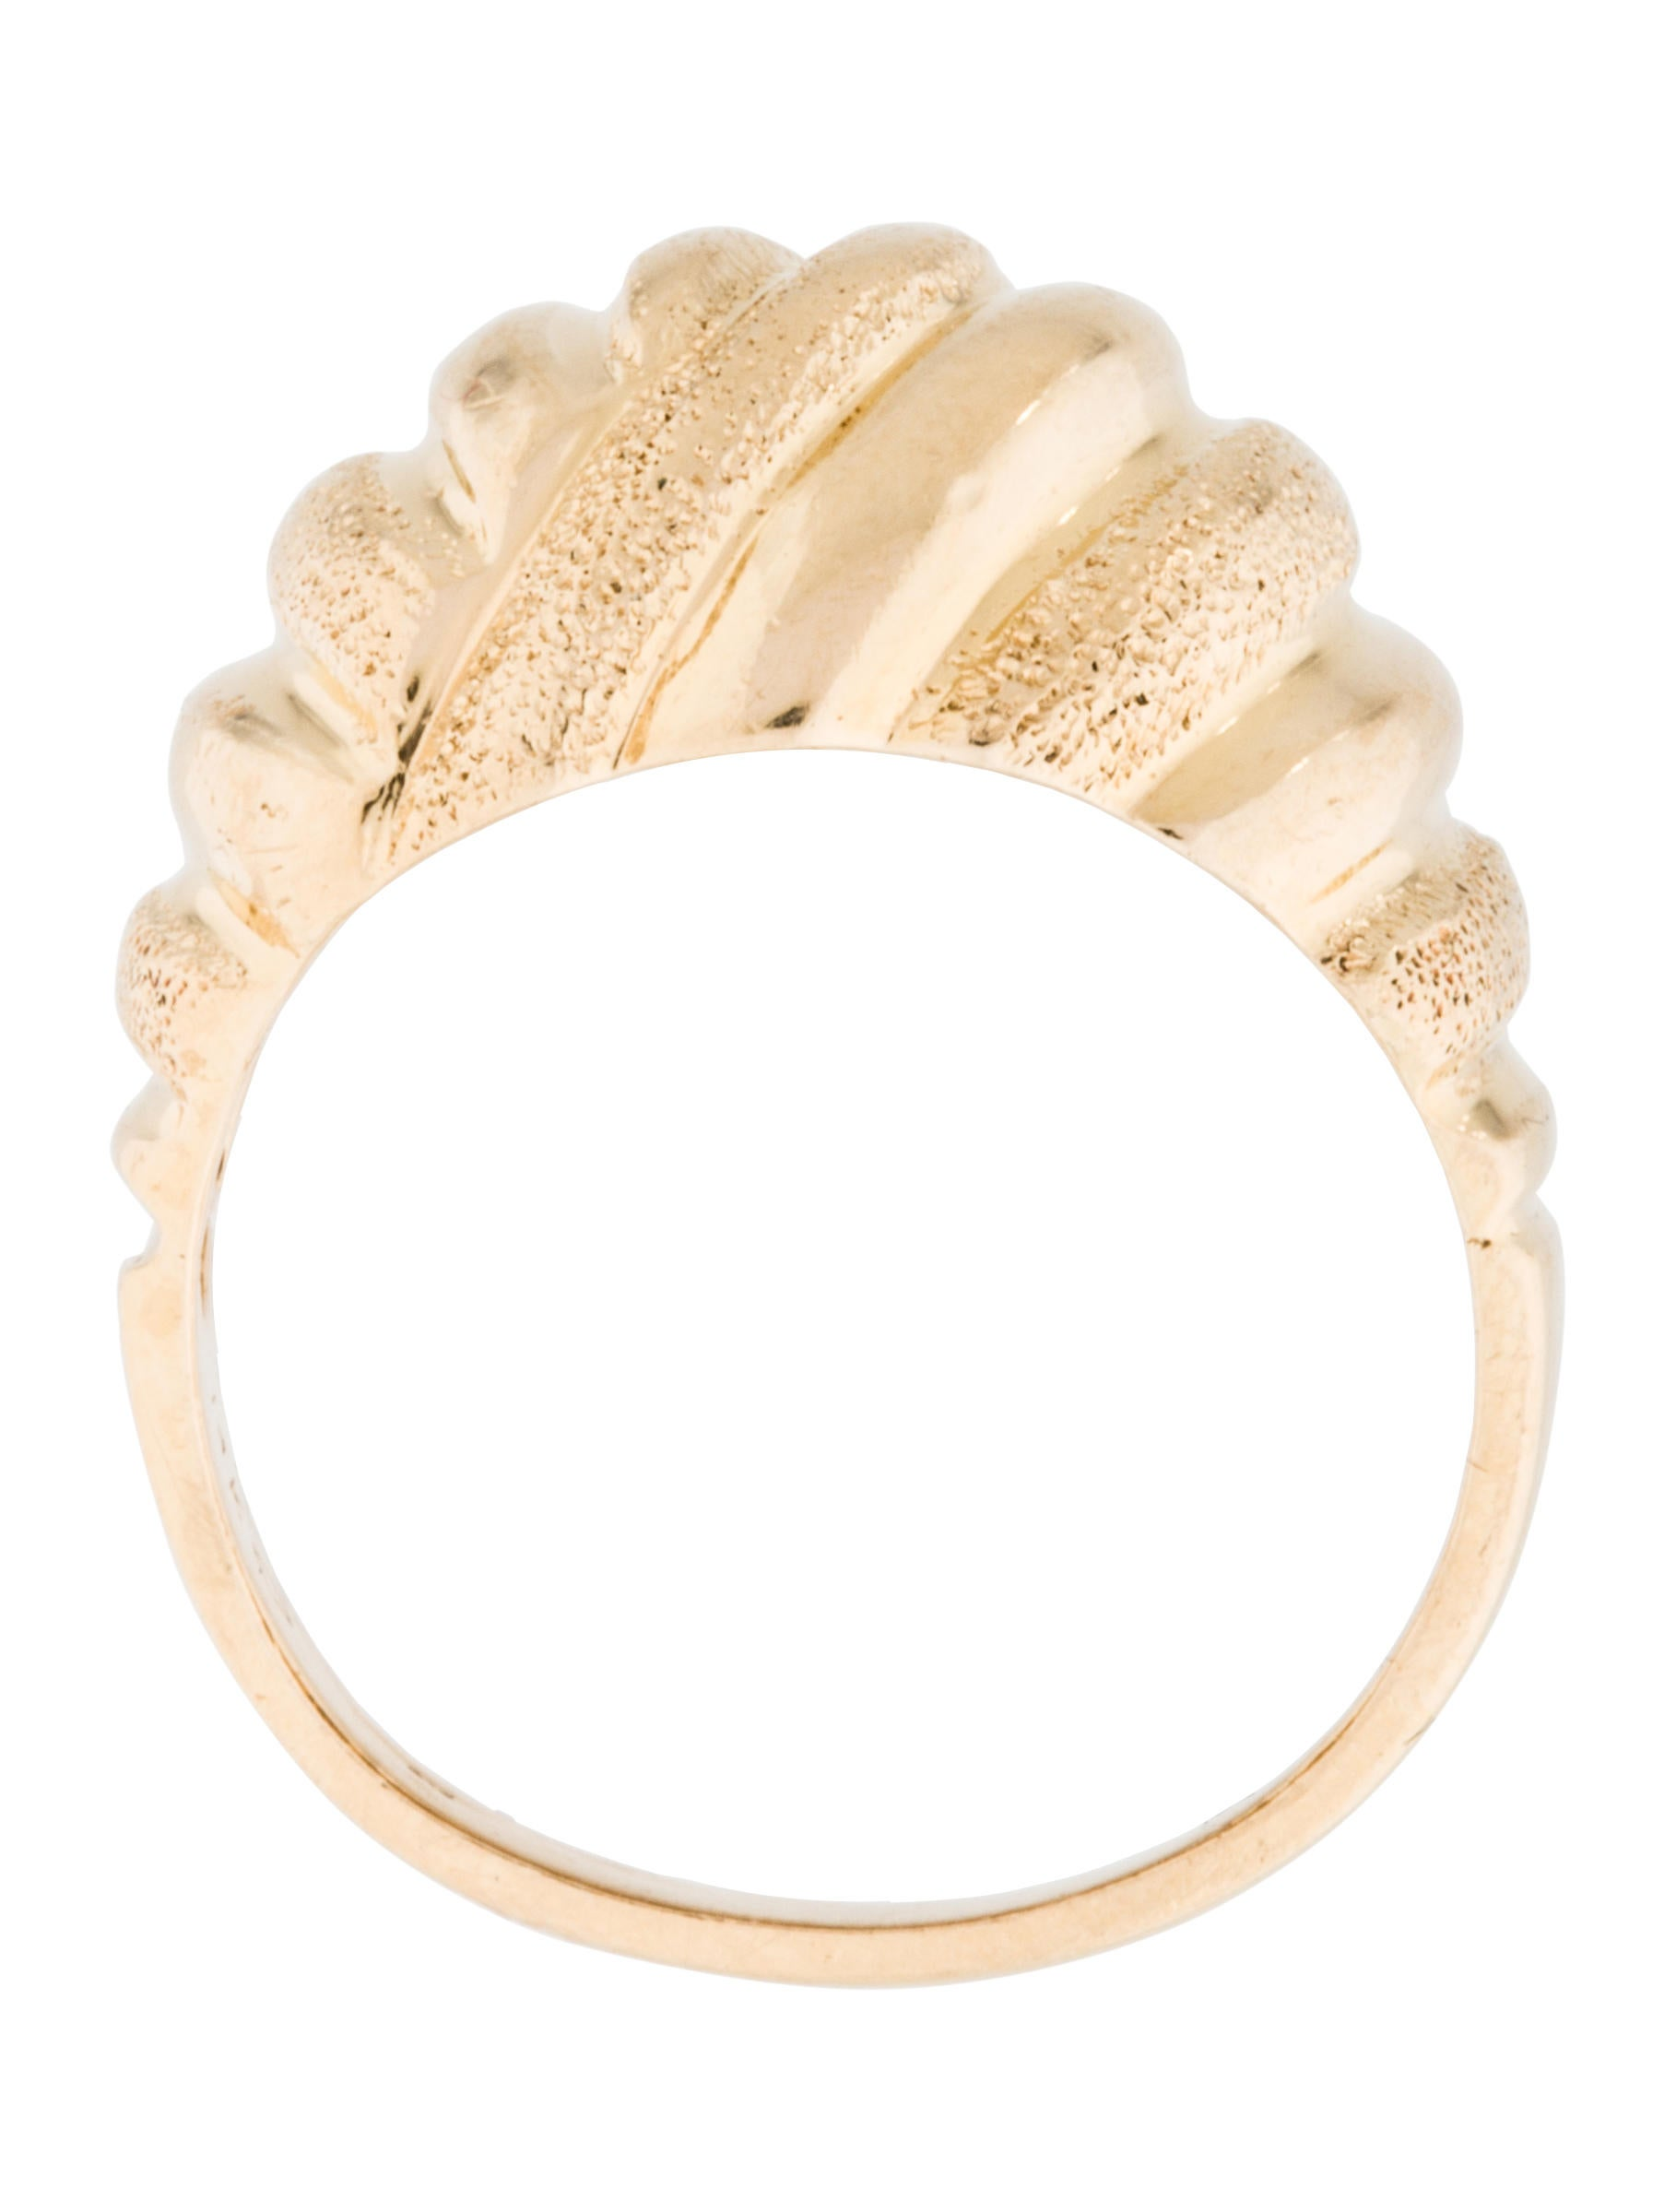 bombe jewelry 14k bomb 233 ring rings rring31807 the realreal 5919